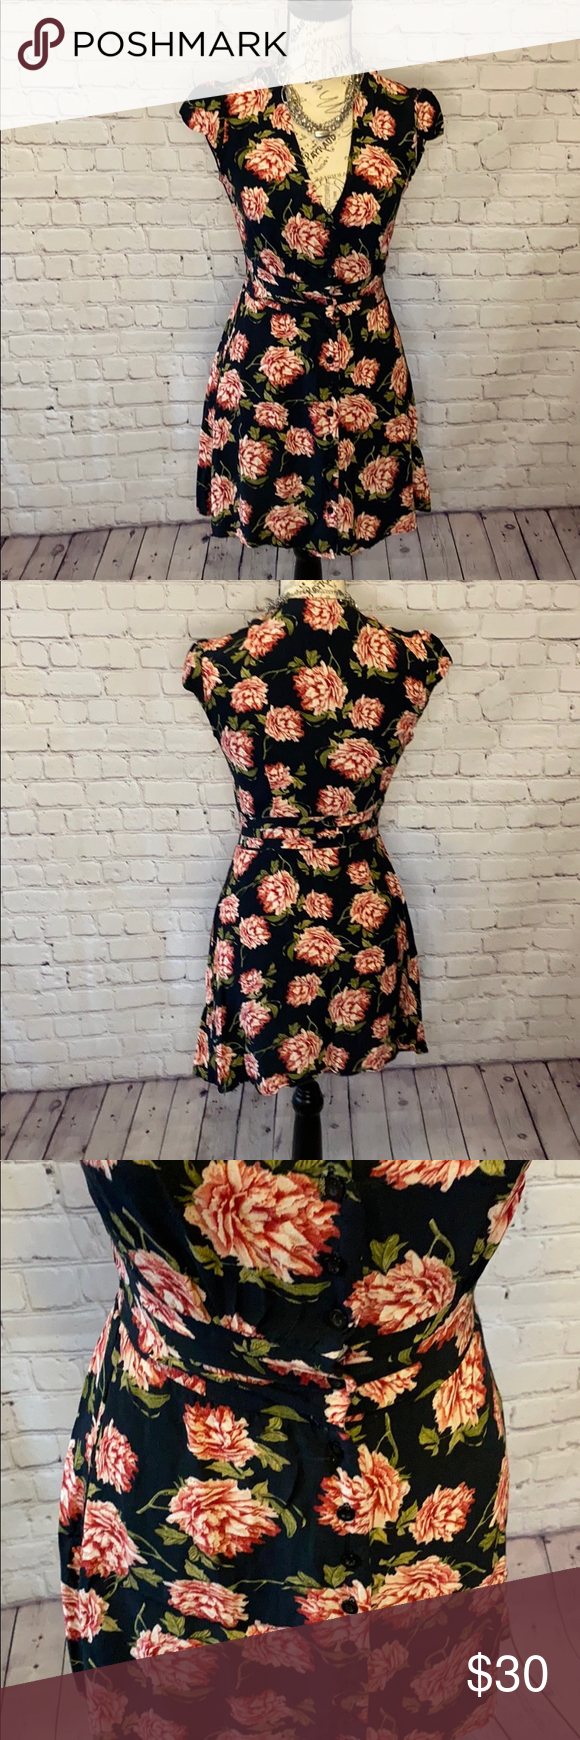 Topshop Button Down Floral Dress Pleated Waist Black With Pink Peach Flowers Like Roses Or Peonies Pleated Pleated Dress Long Sleeve Mini Dress Top Shop Dress [ 1740 x 580 Pixel ]